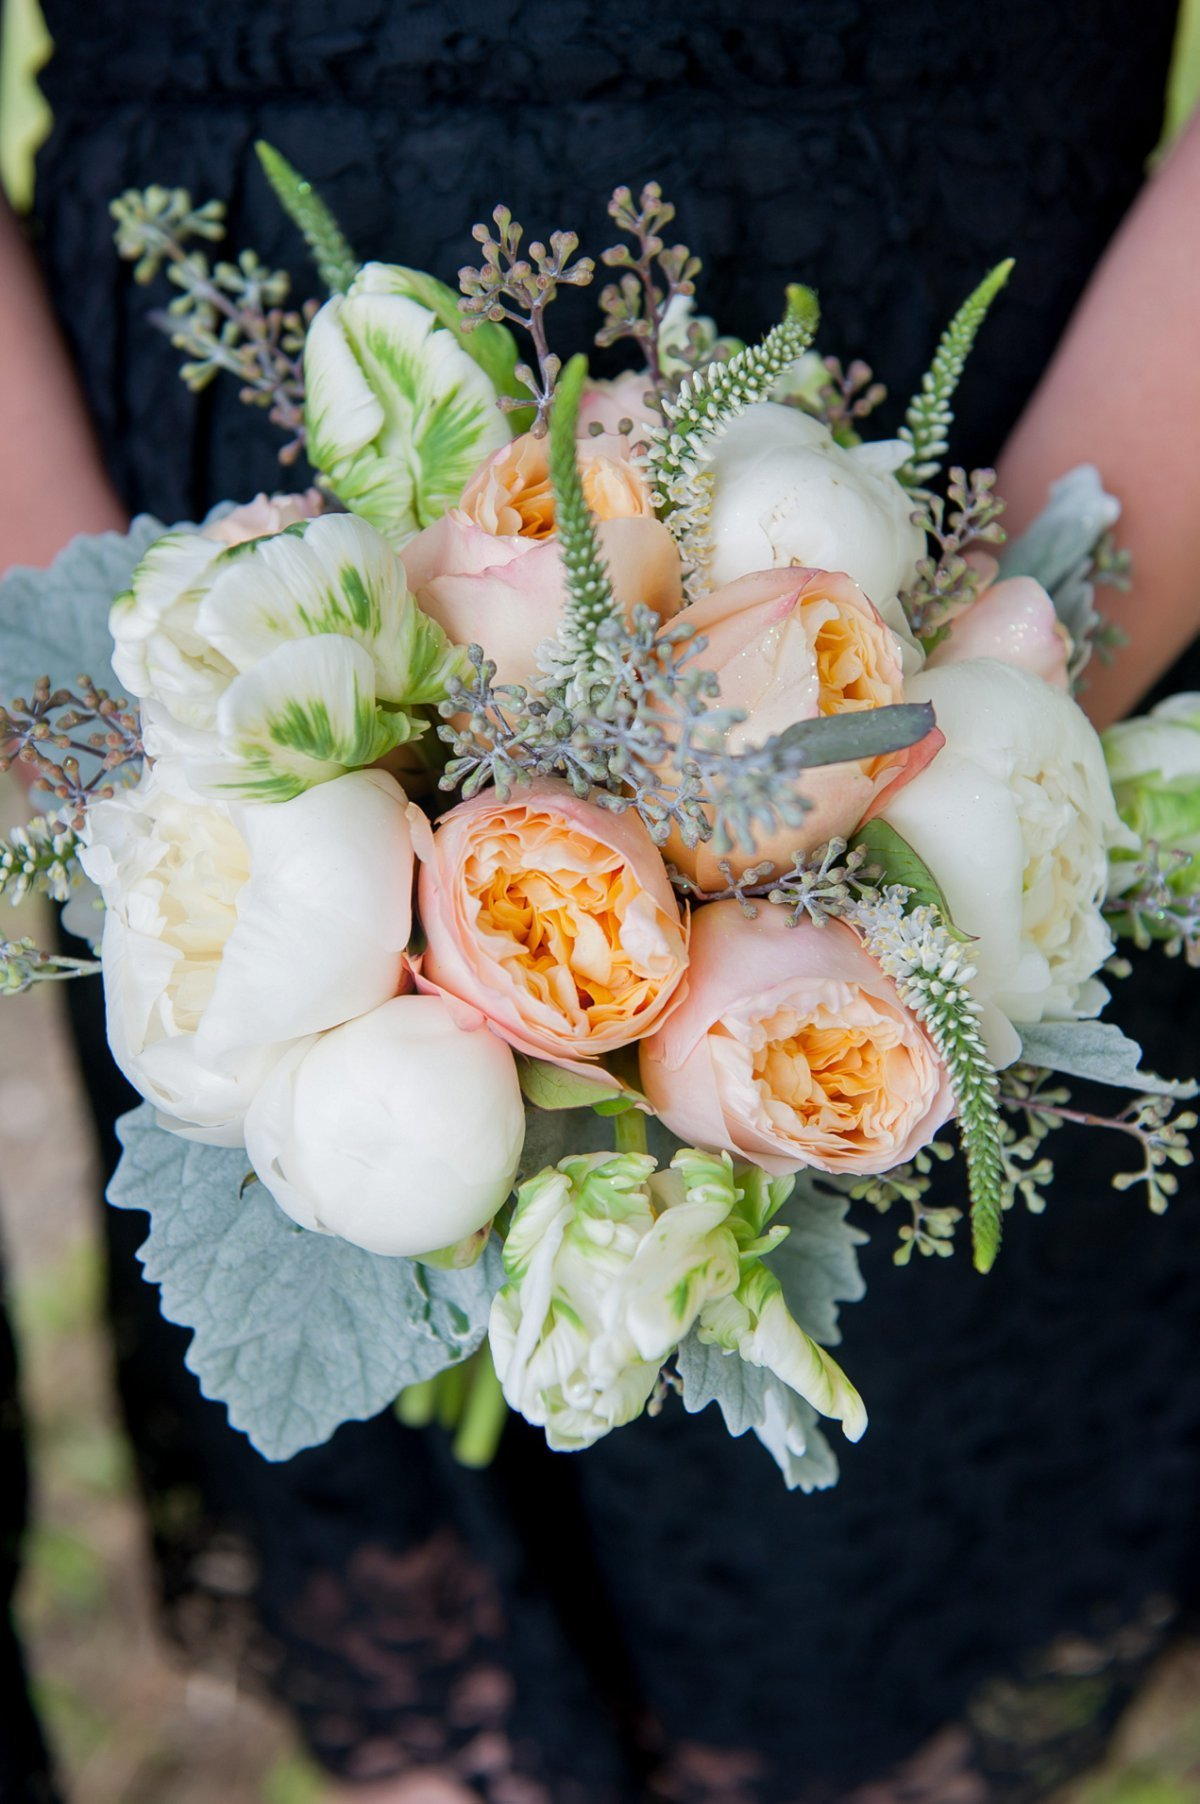 Peach, green, gray and navy wedding colors and florals, kris kandel photographer